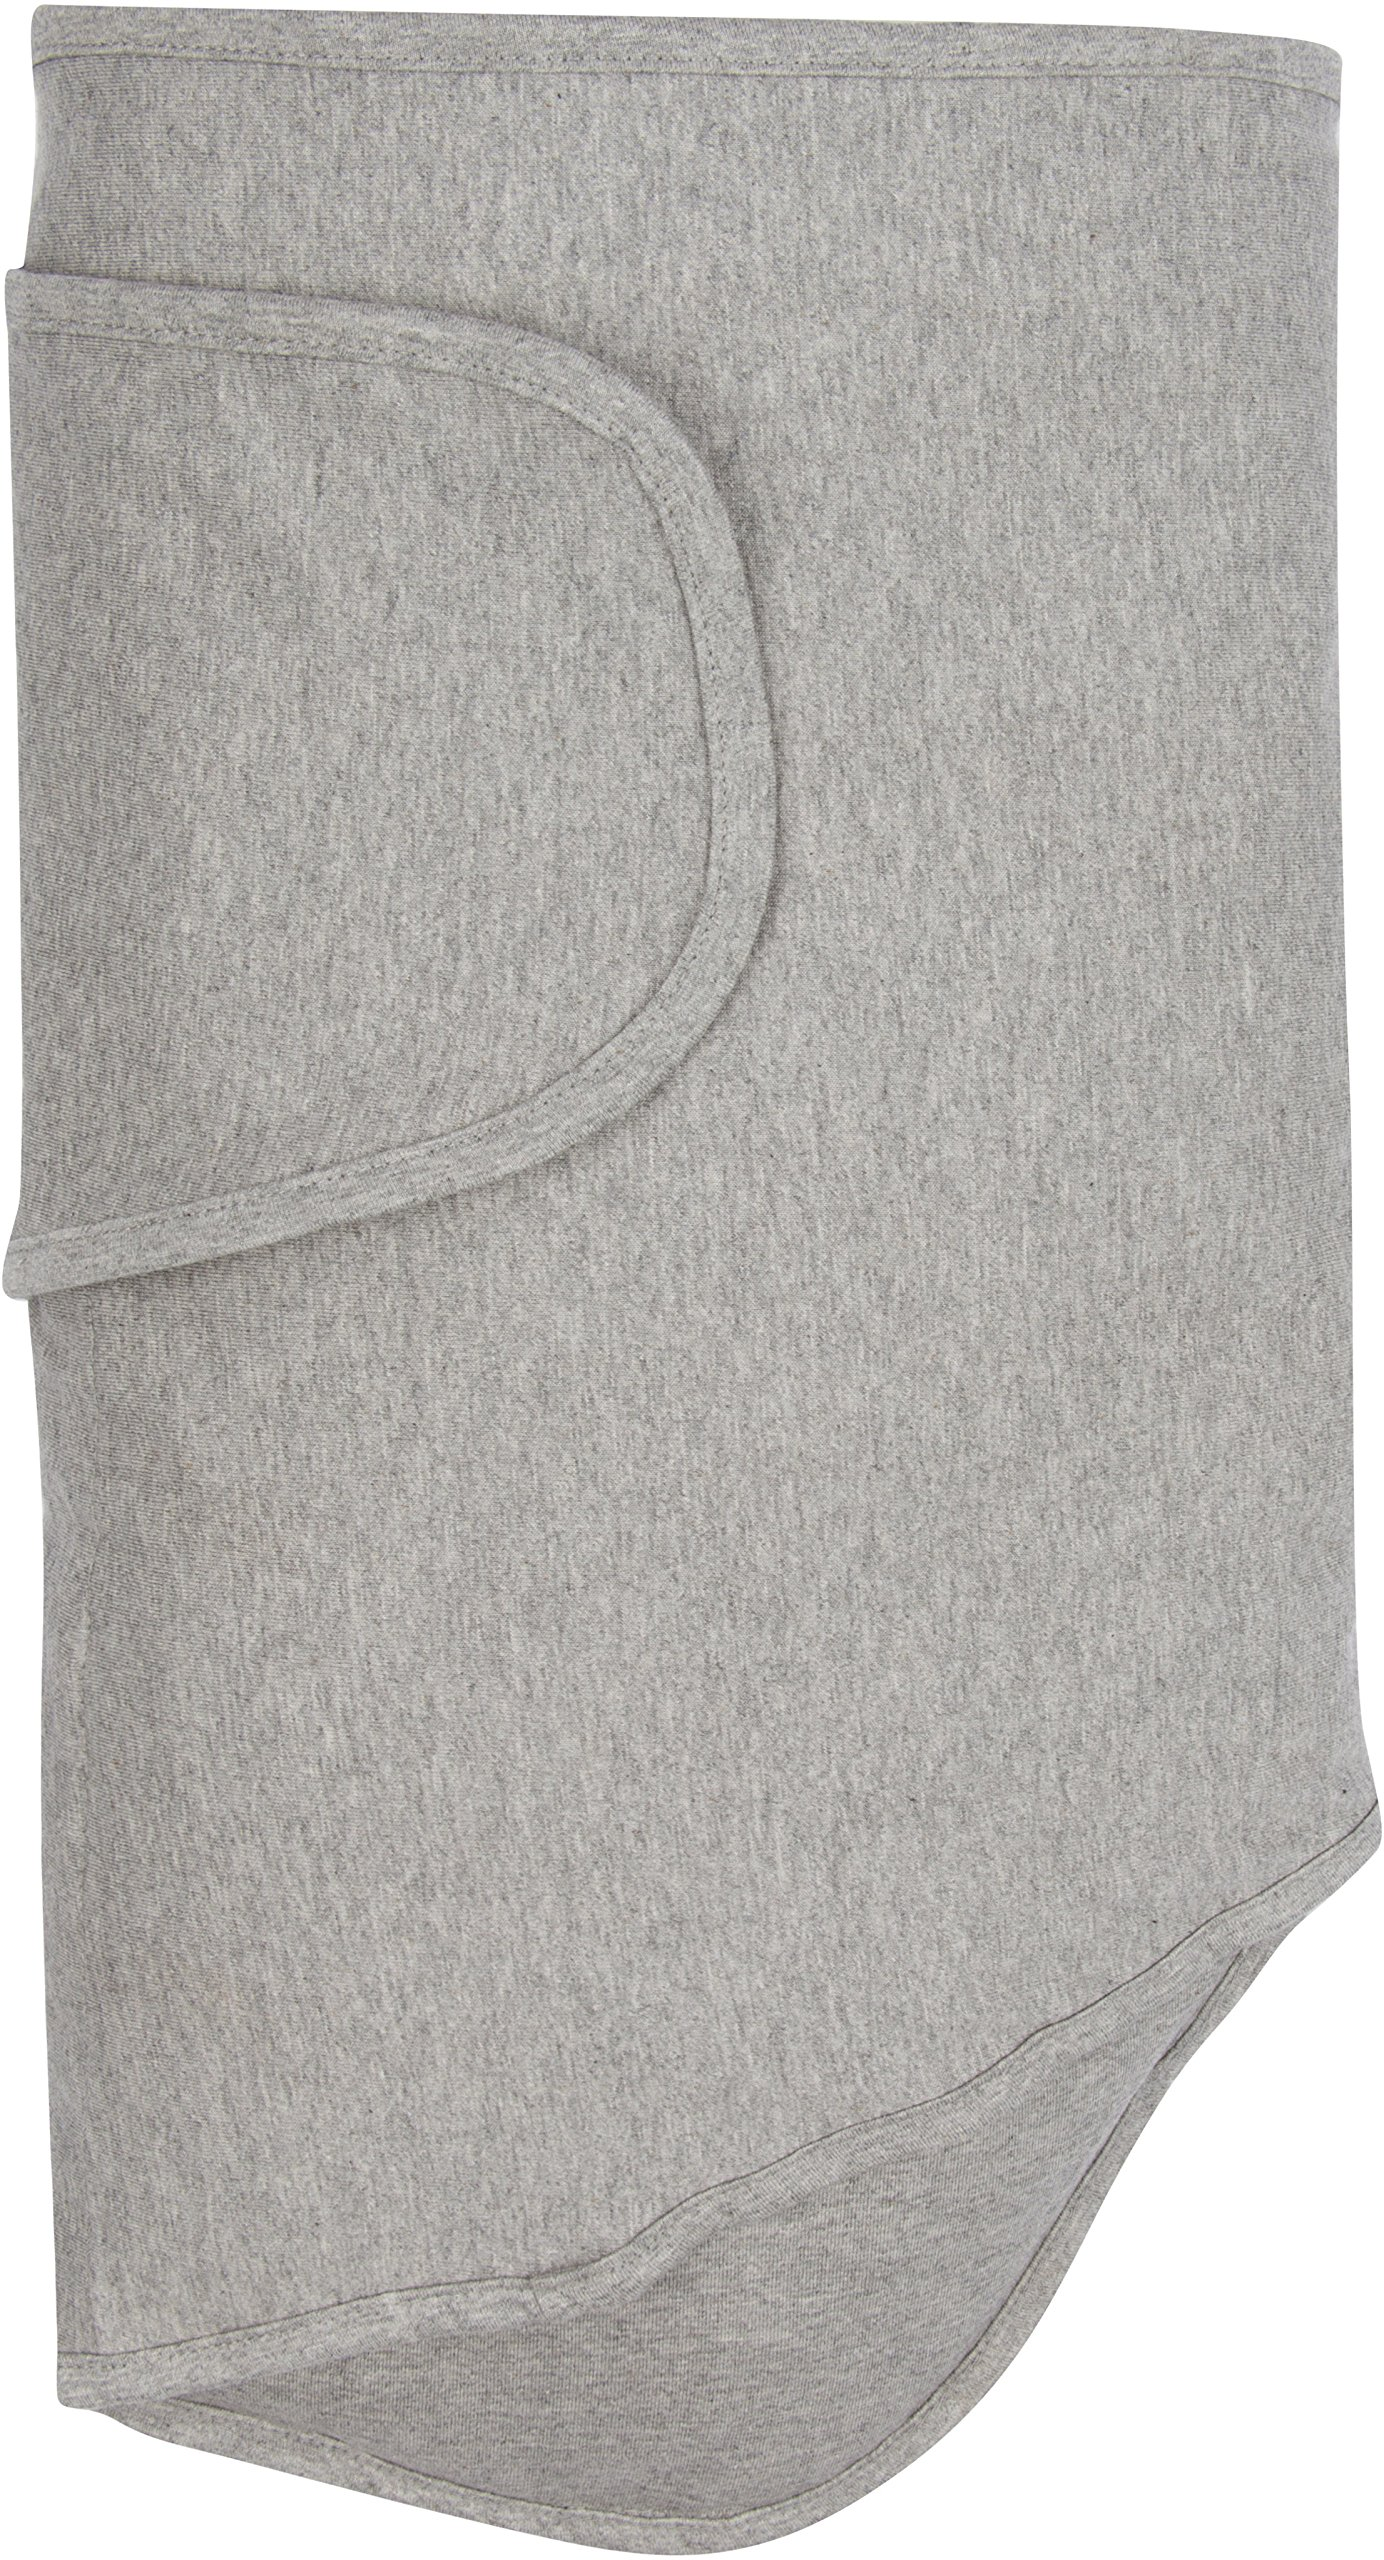 Miracle Blanket Swaddle Unisex Baby, Solid Grey by Miracle Blanket